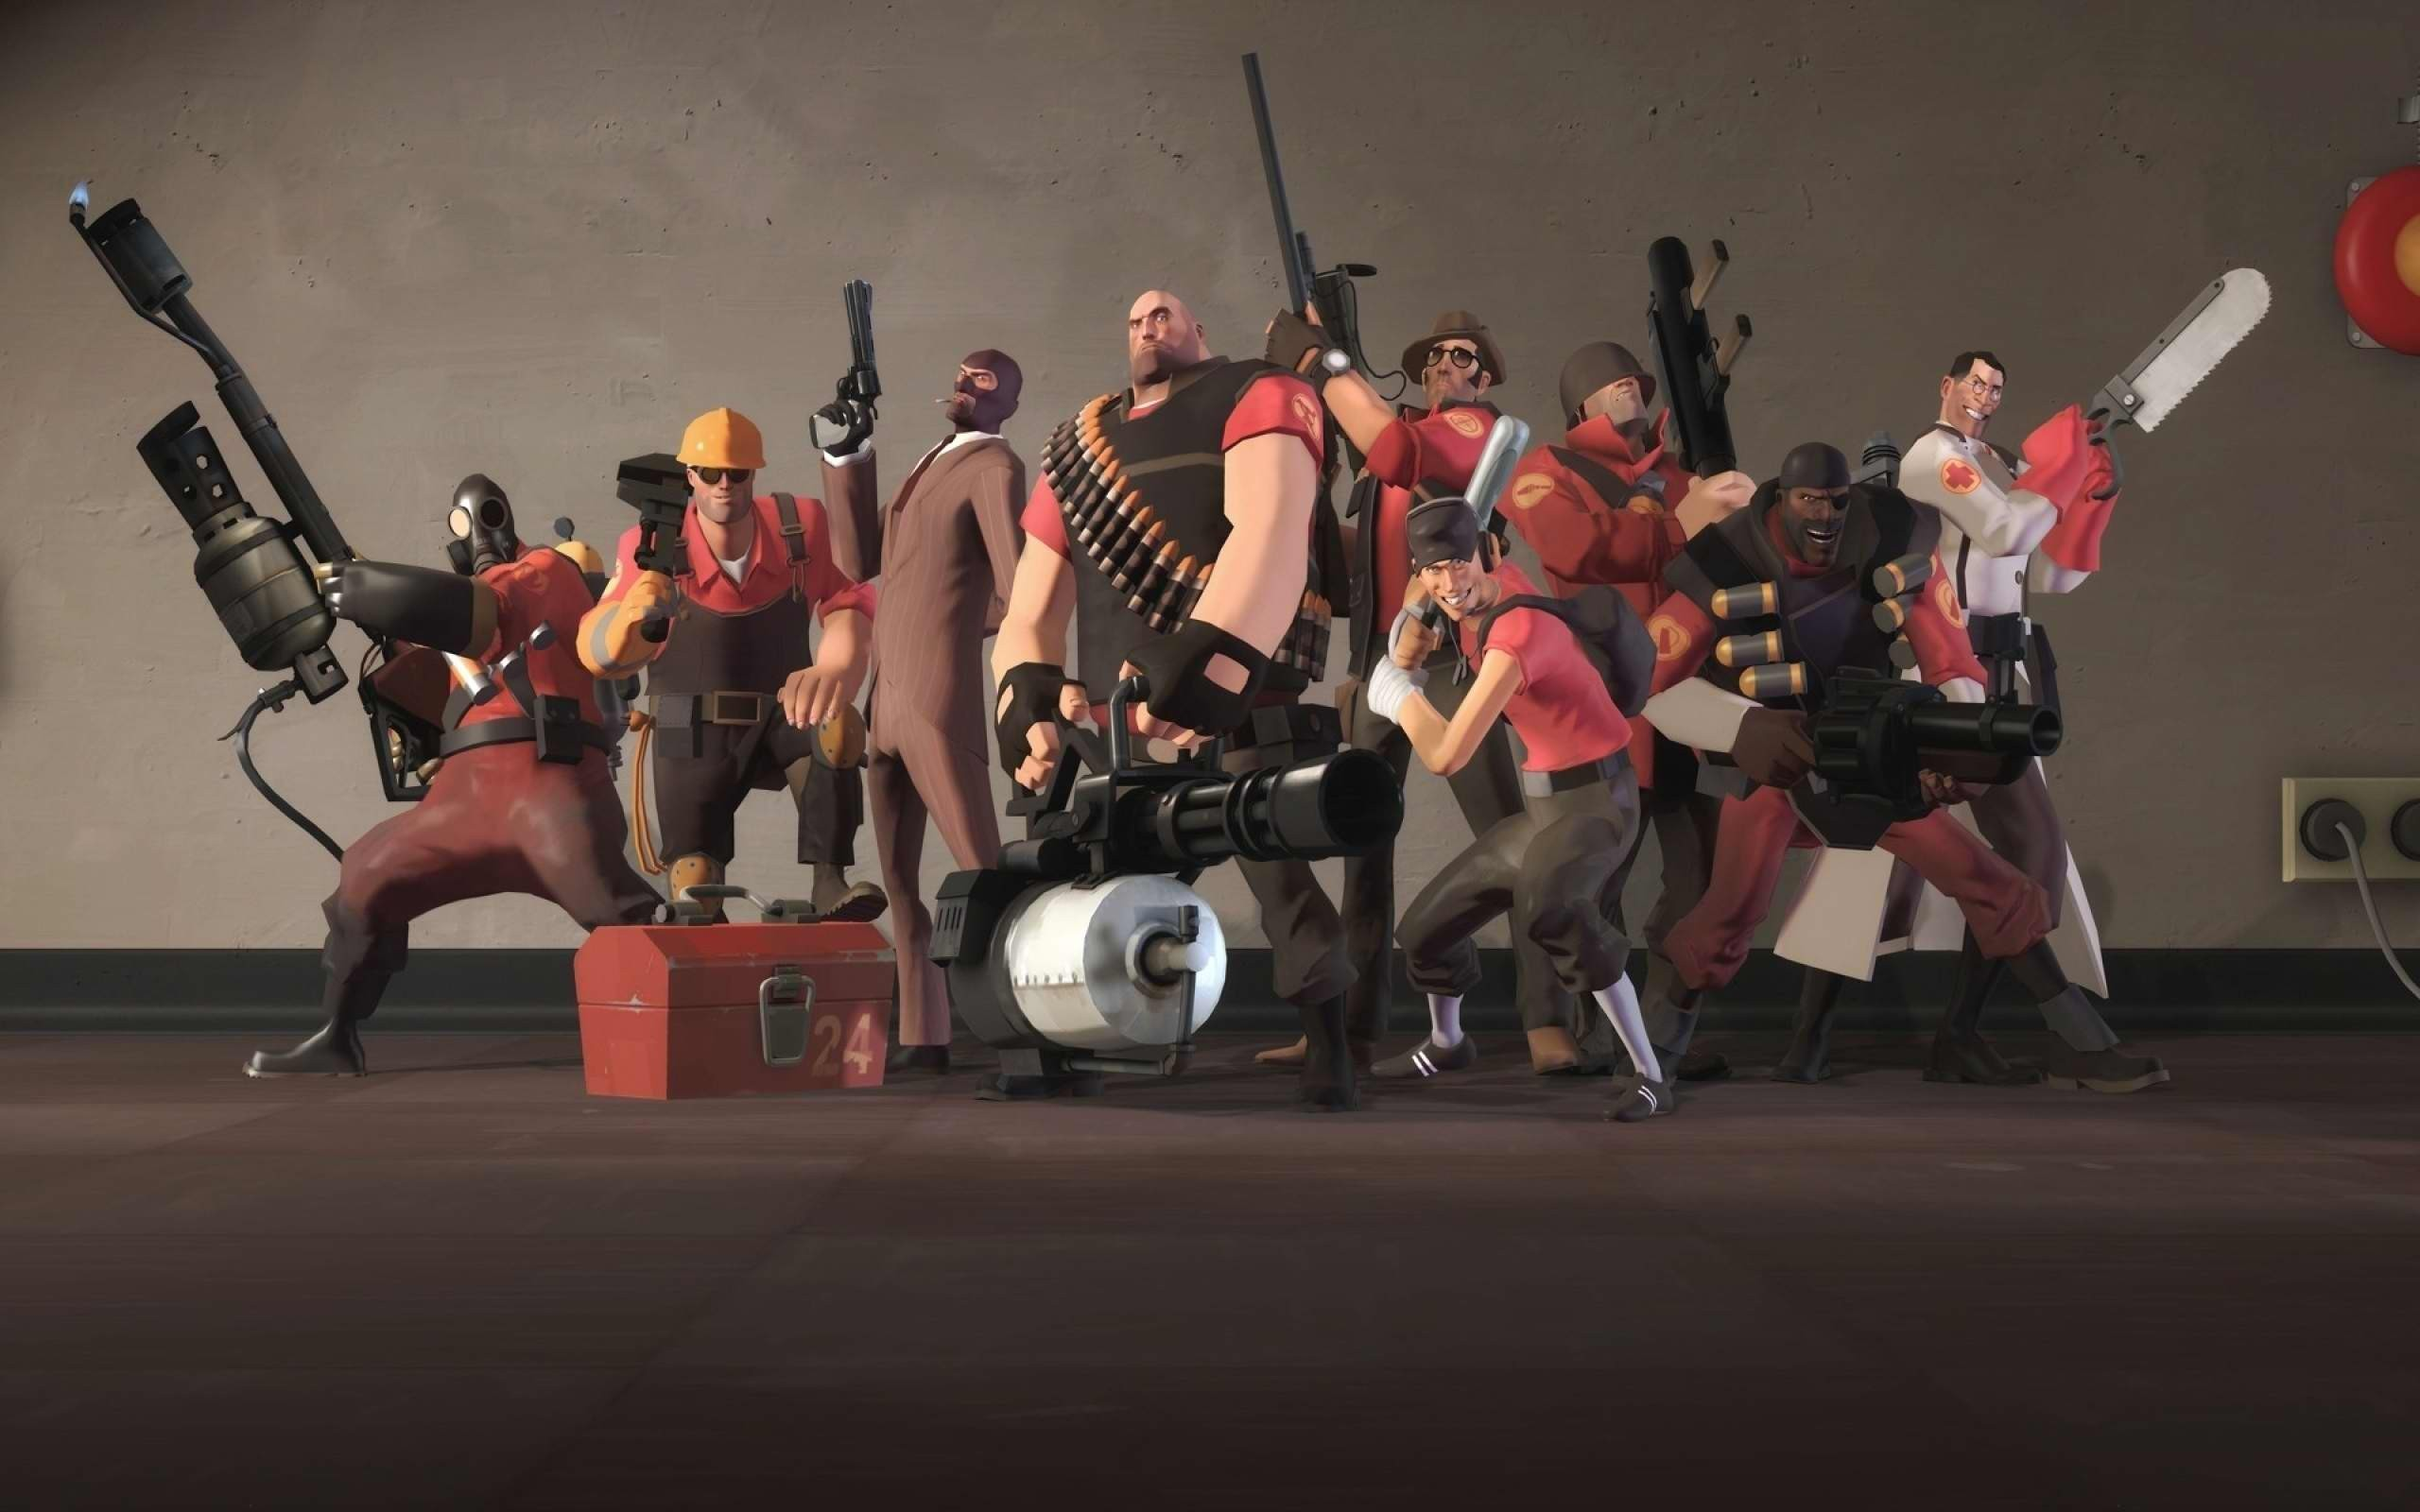 2560x1600 Awesome Team Fortress 2 Wall | Team Fortress 2 Wallpapers